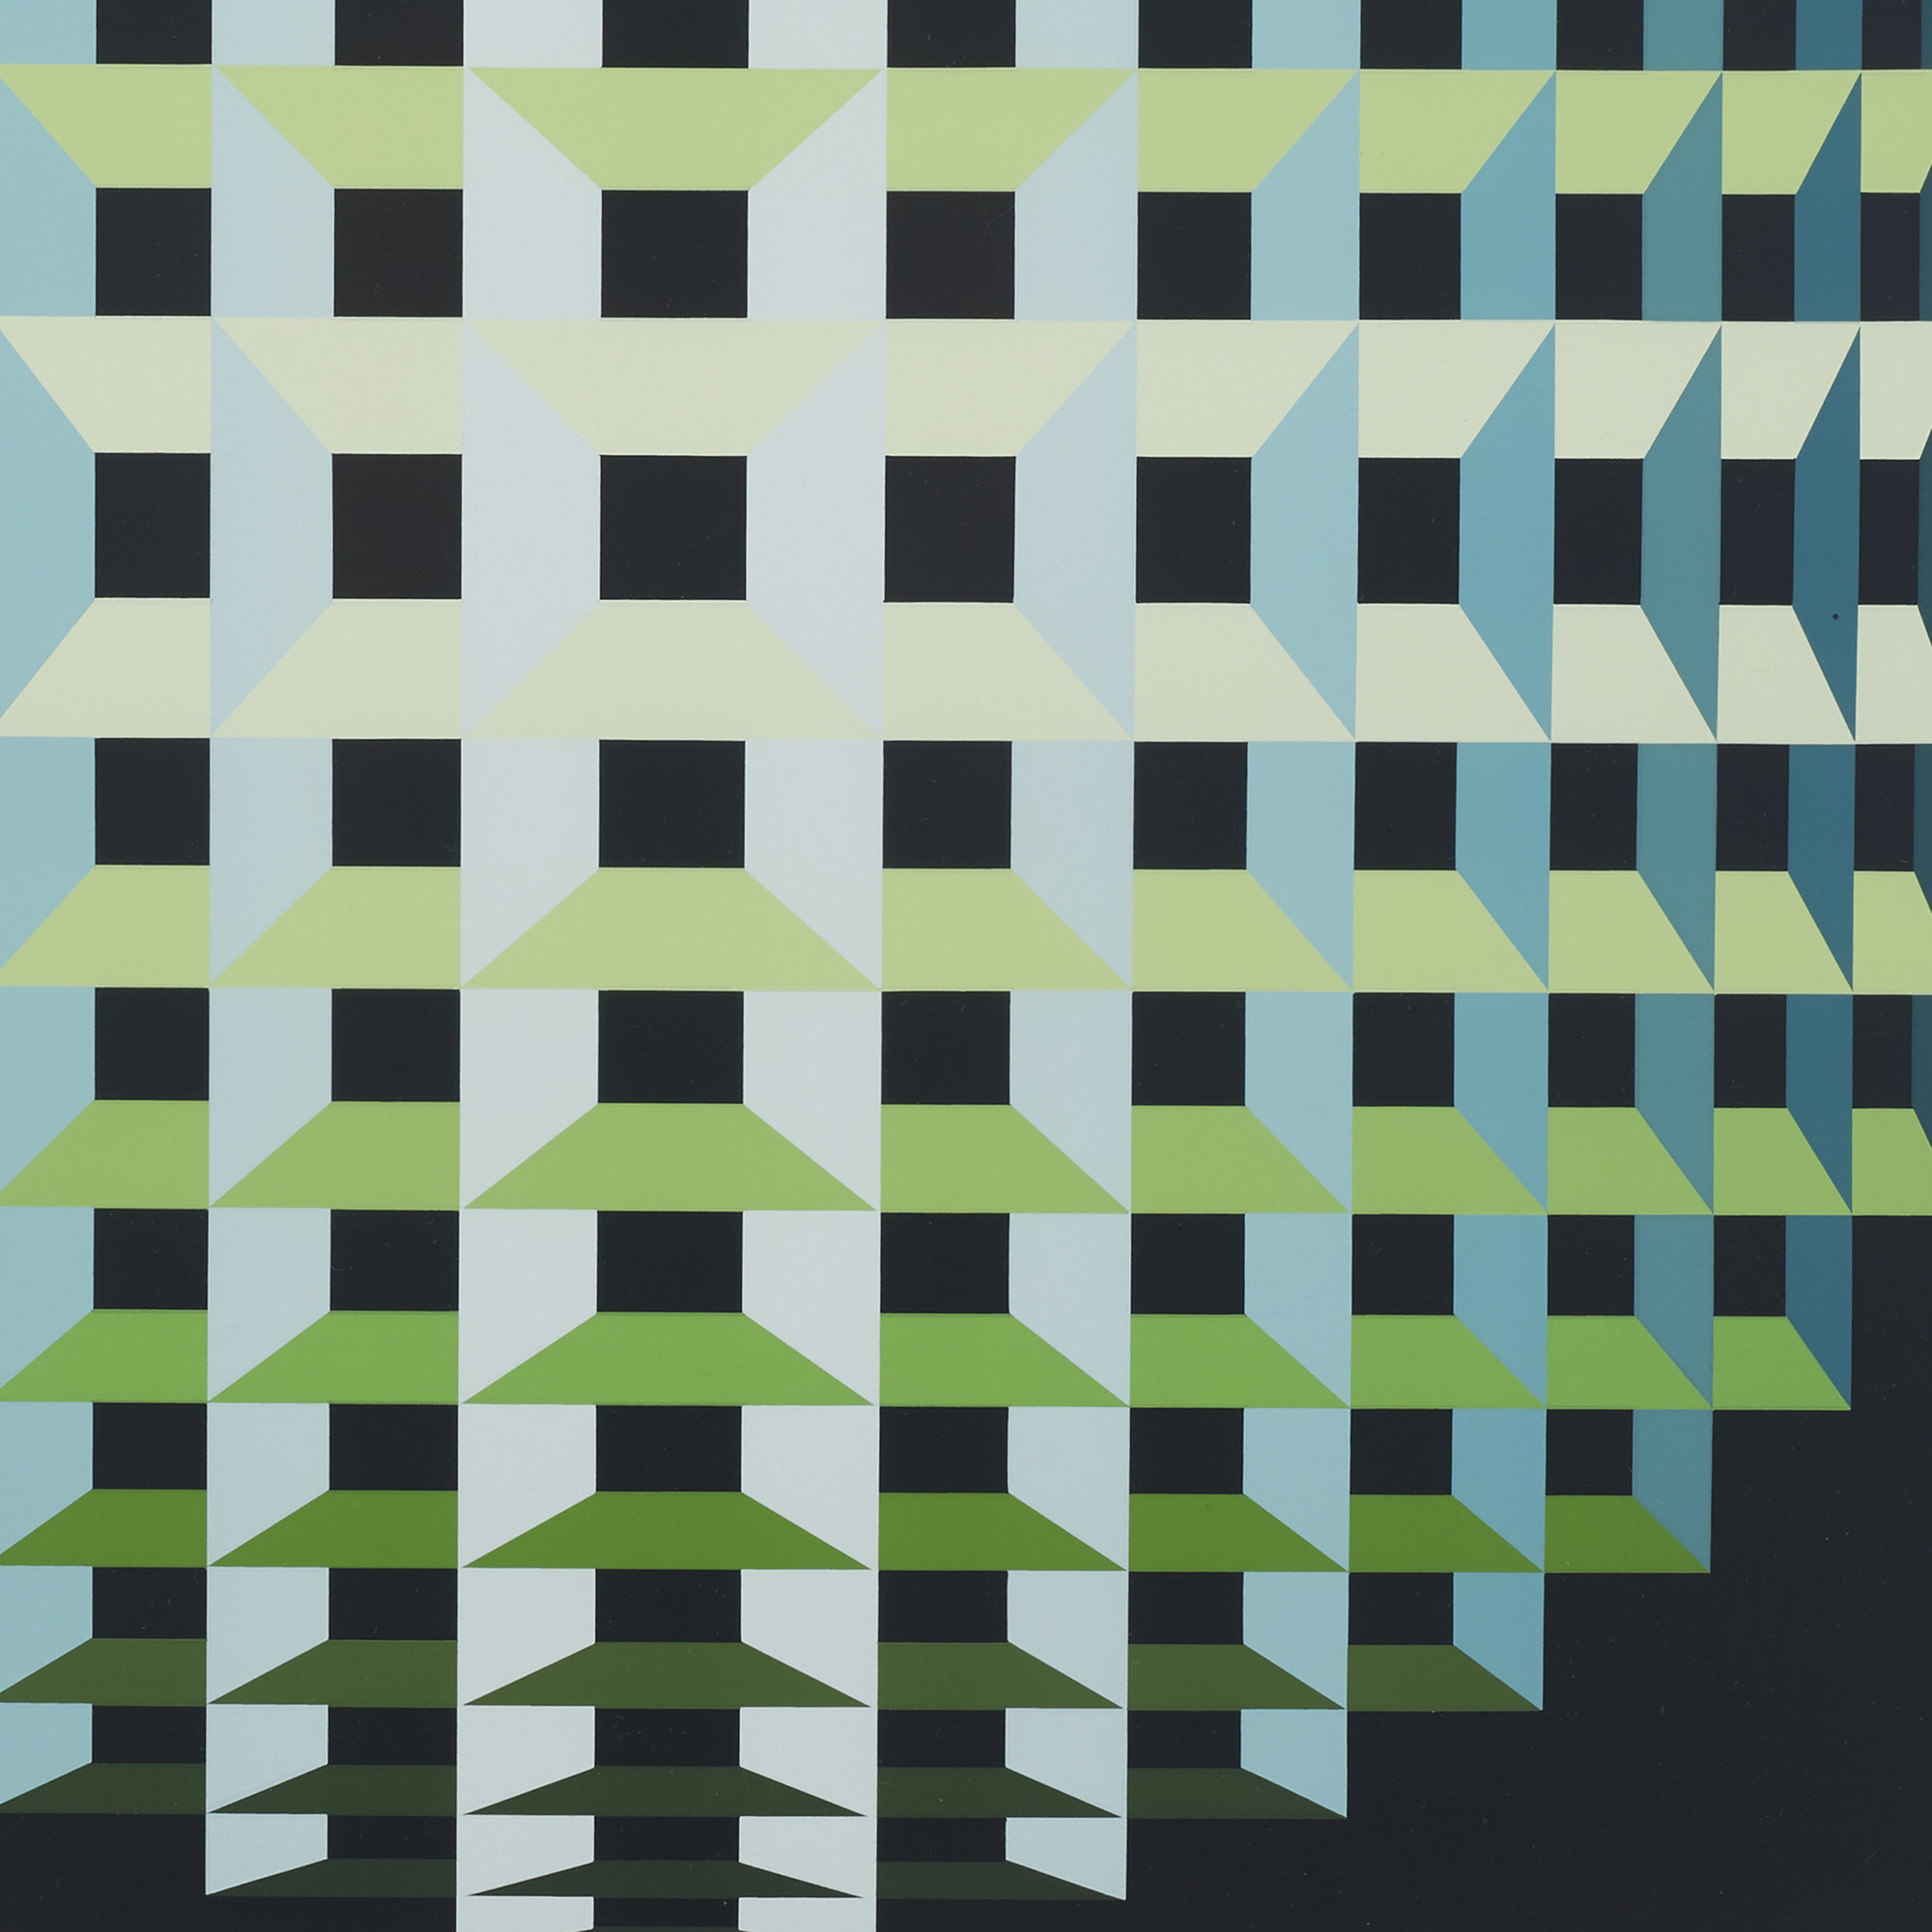 771: Yvaral (Jean-Pierre Vasarely) / Inner Depth (2 of 2)